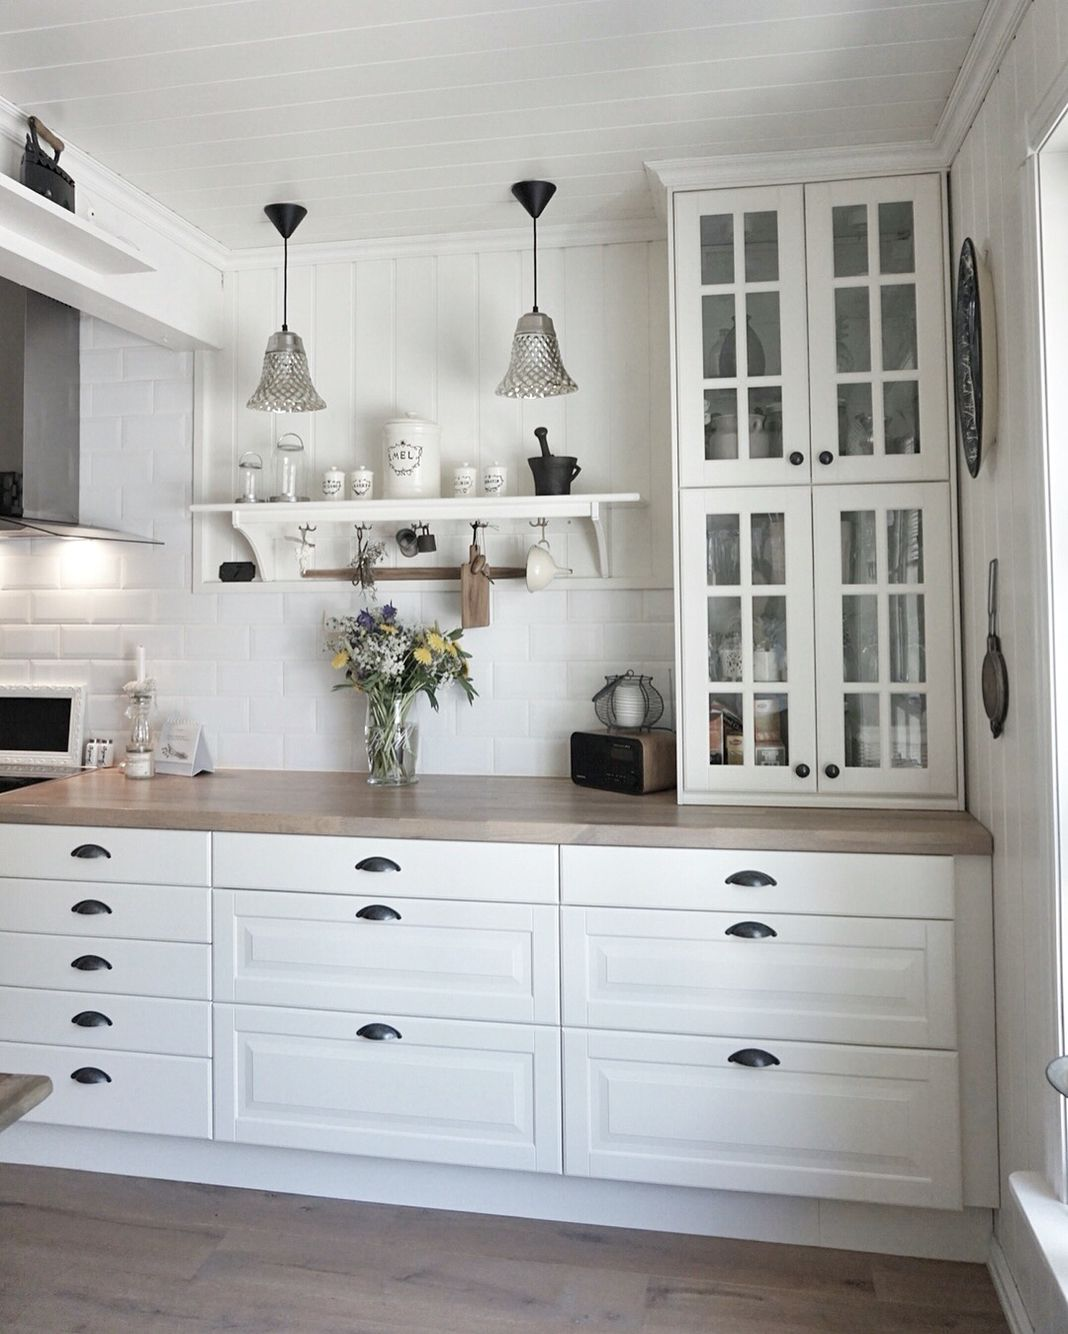 Ikea Kitchen A Href Tag Behindabluedoor Behindabluedoor A A Href Tag Kitchen Kitchen Ikea Kitchen Design Kitchen Cabinet Design Home Kitchens